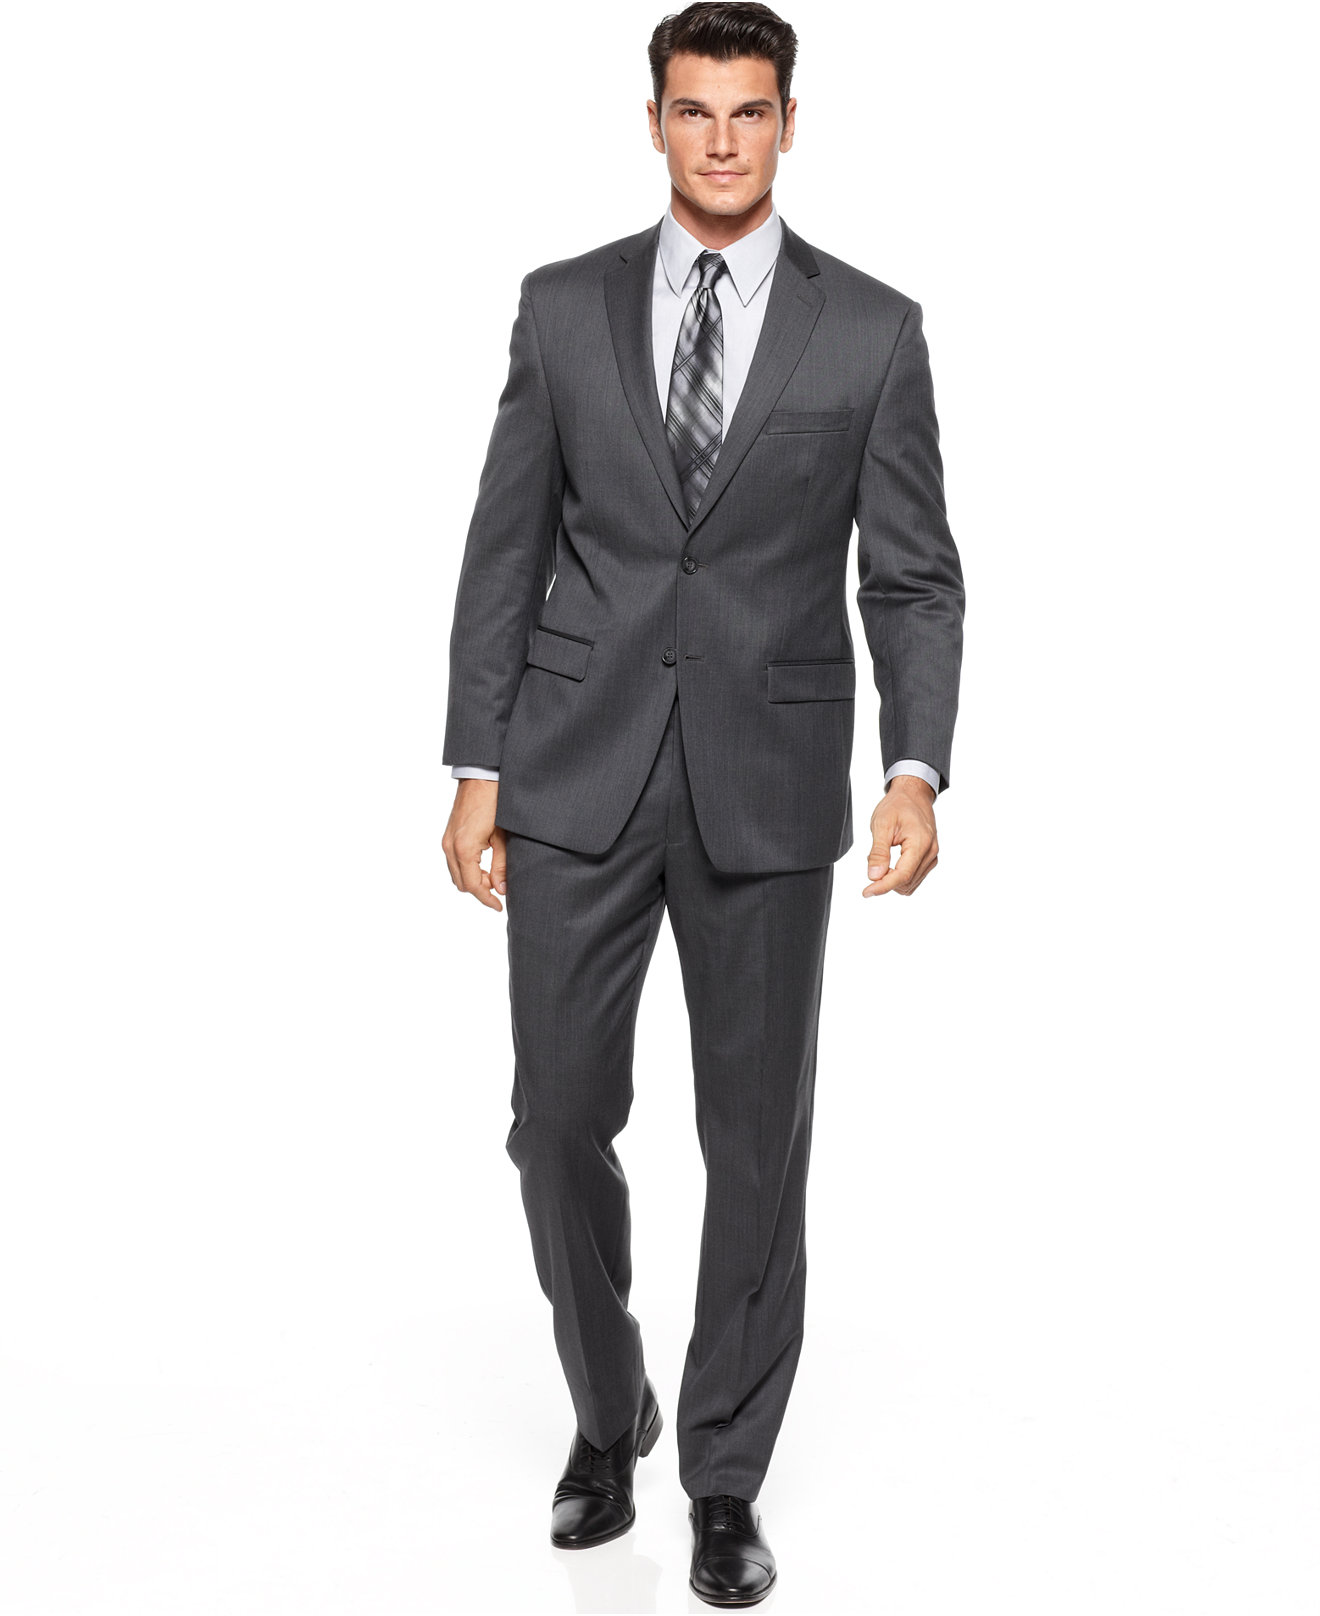 Calvin Klein Charcoal Solid Slim-Fit Suit | Blingby